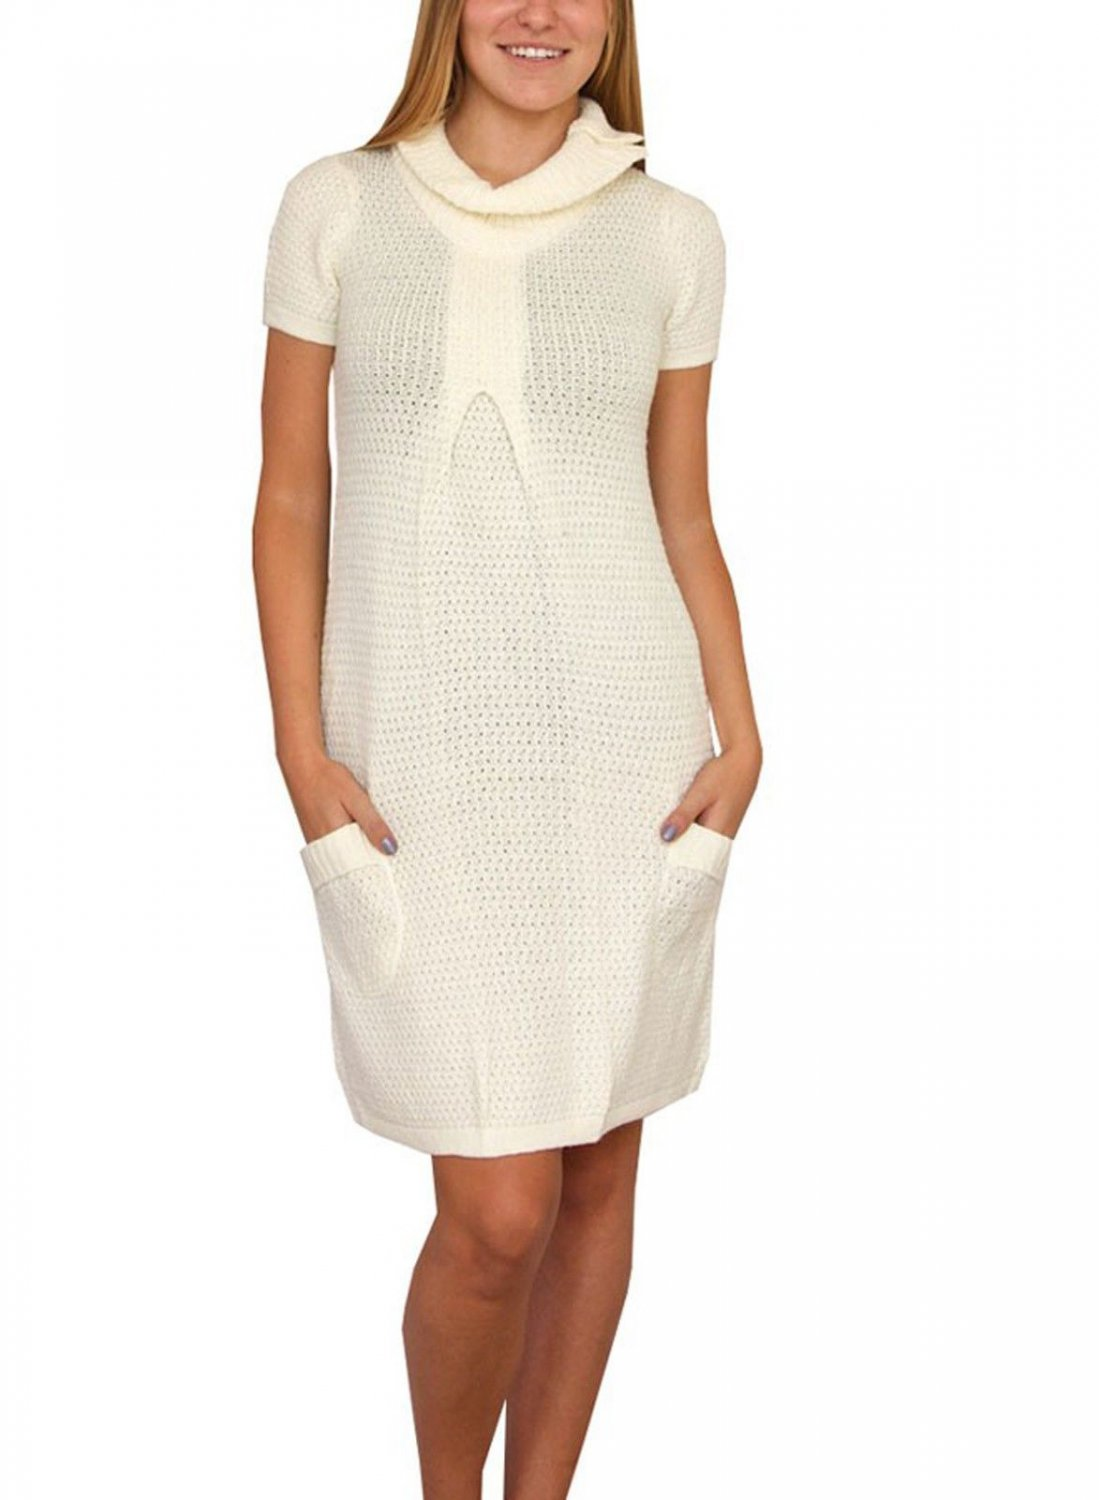 Love 2 Be Free Juniors M Ivory Sweater Dress with Funnel Neck and Pockets